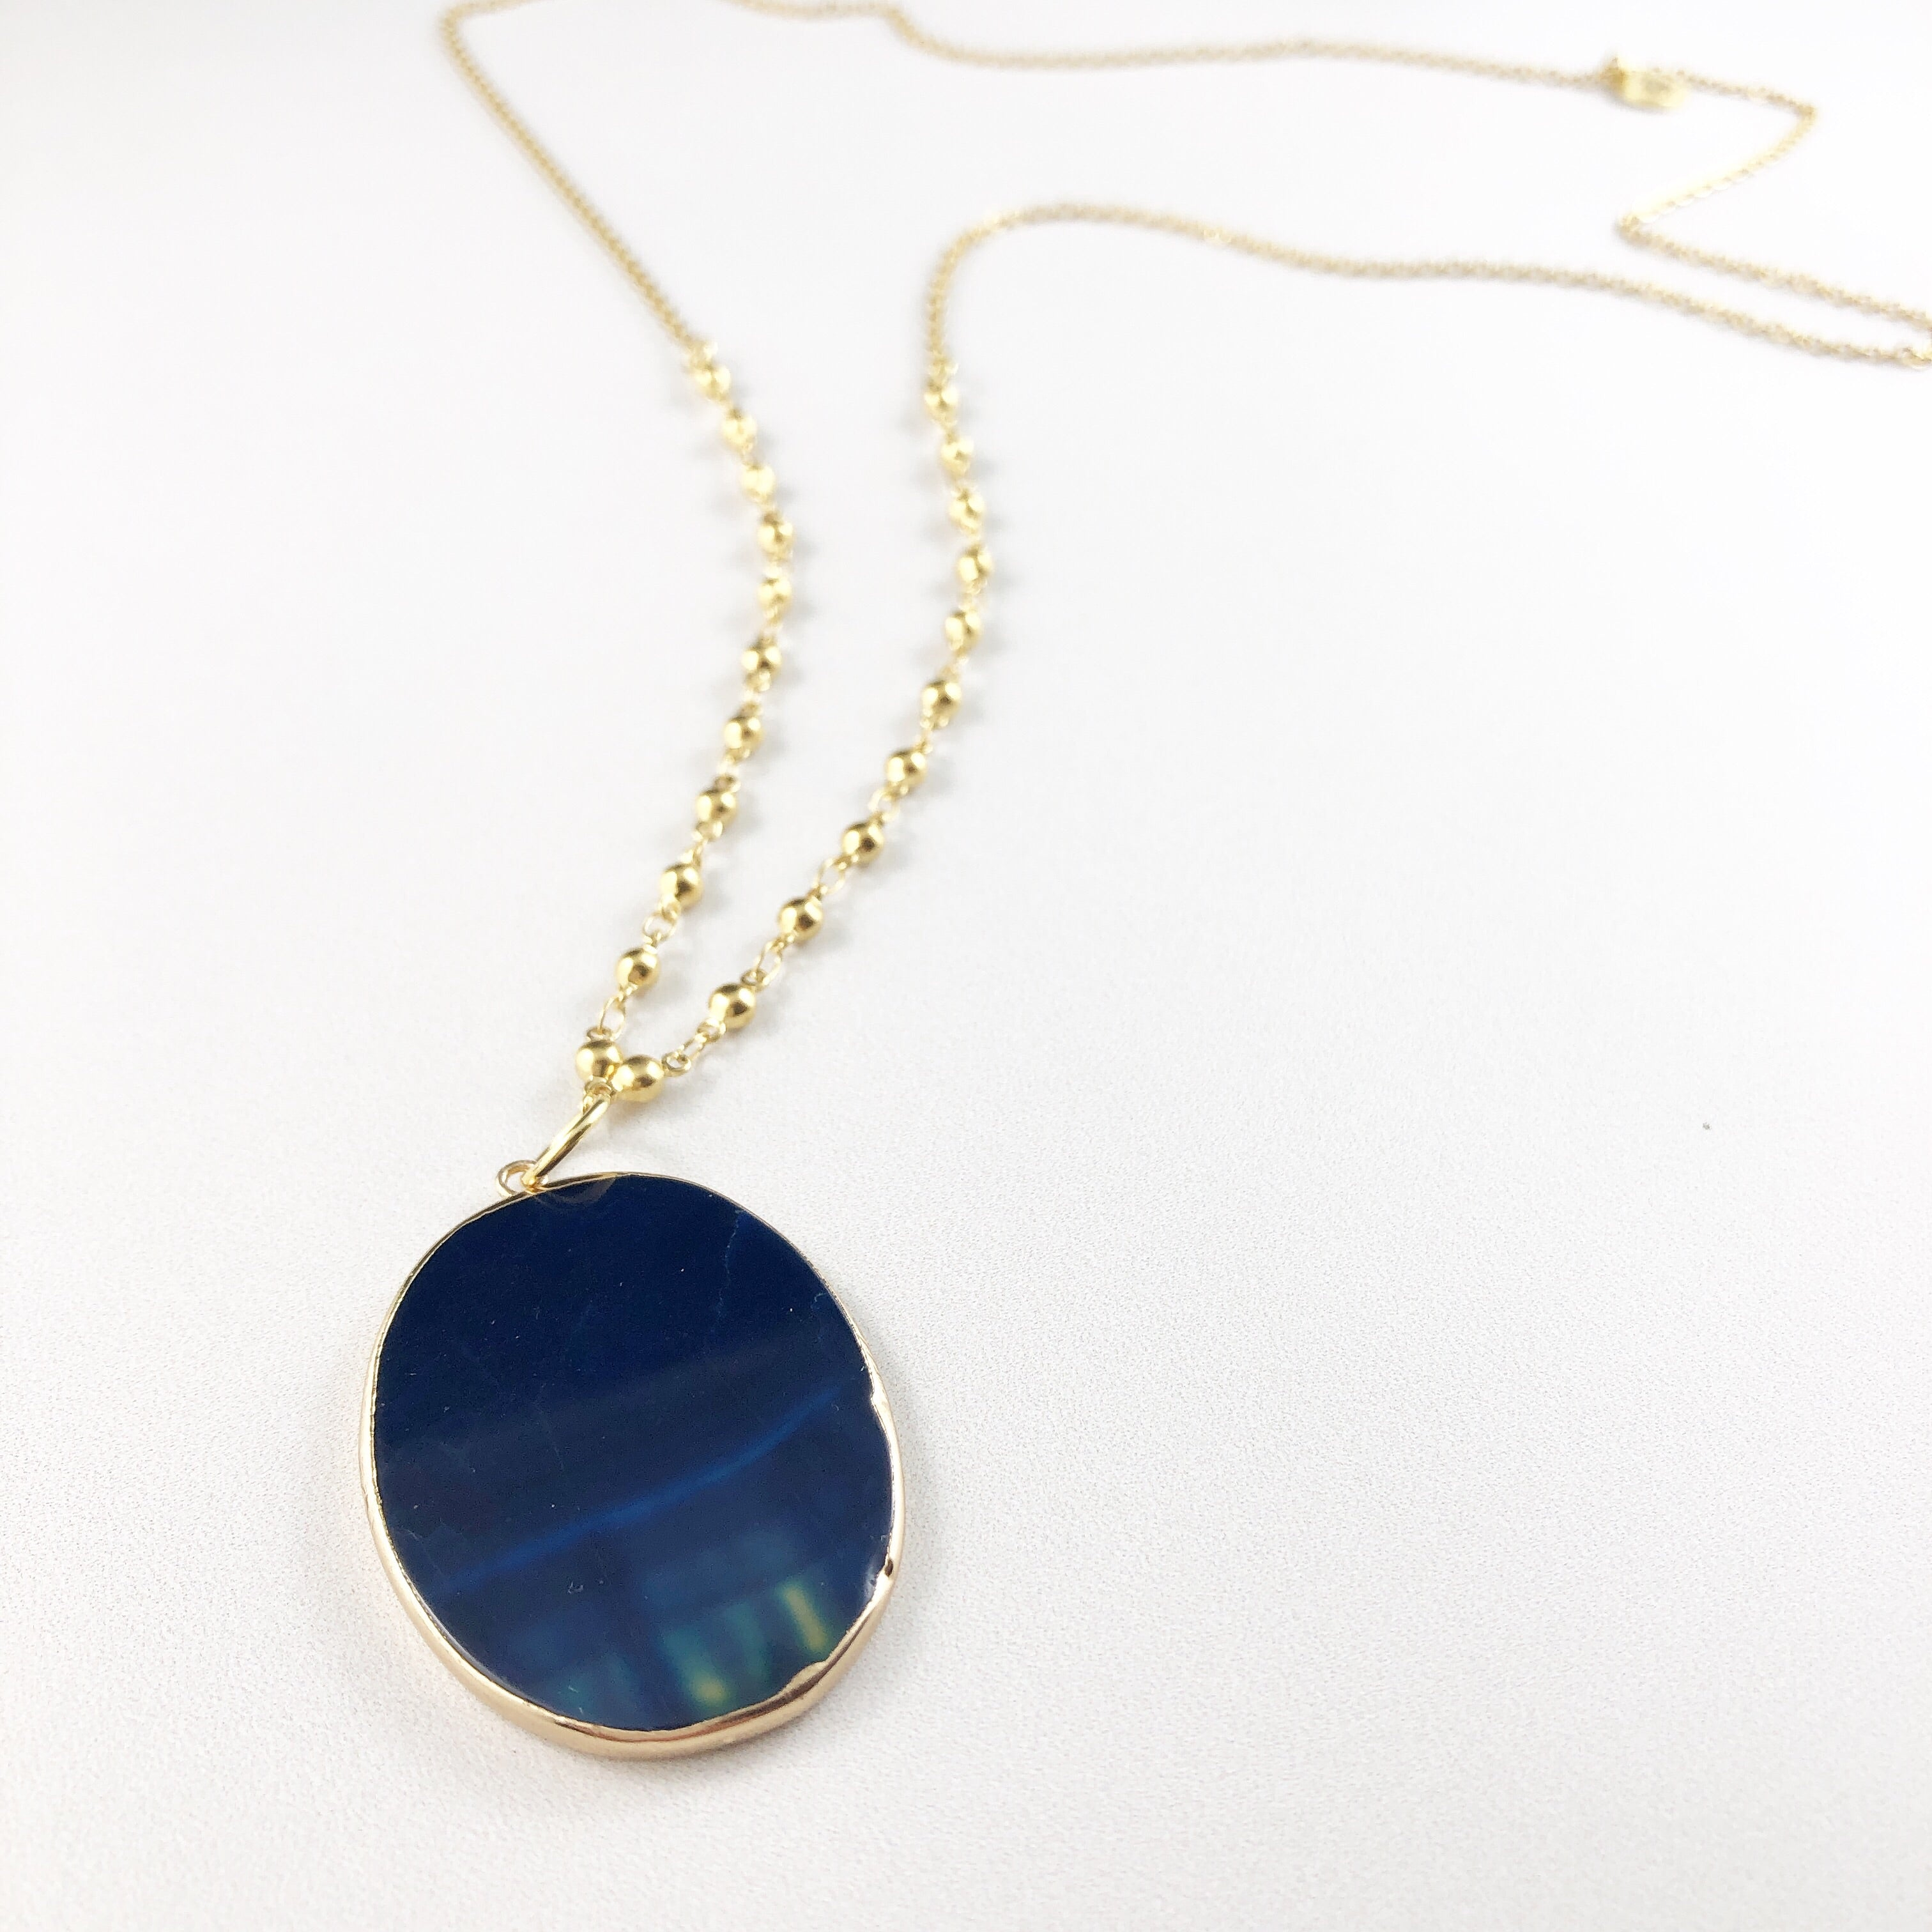 Midnight Blue Agate Stone Pendant Necklace